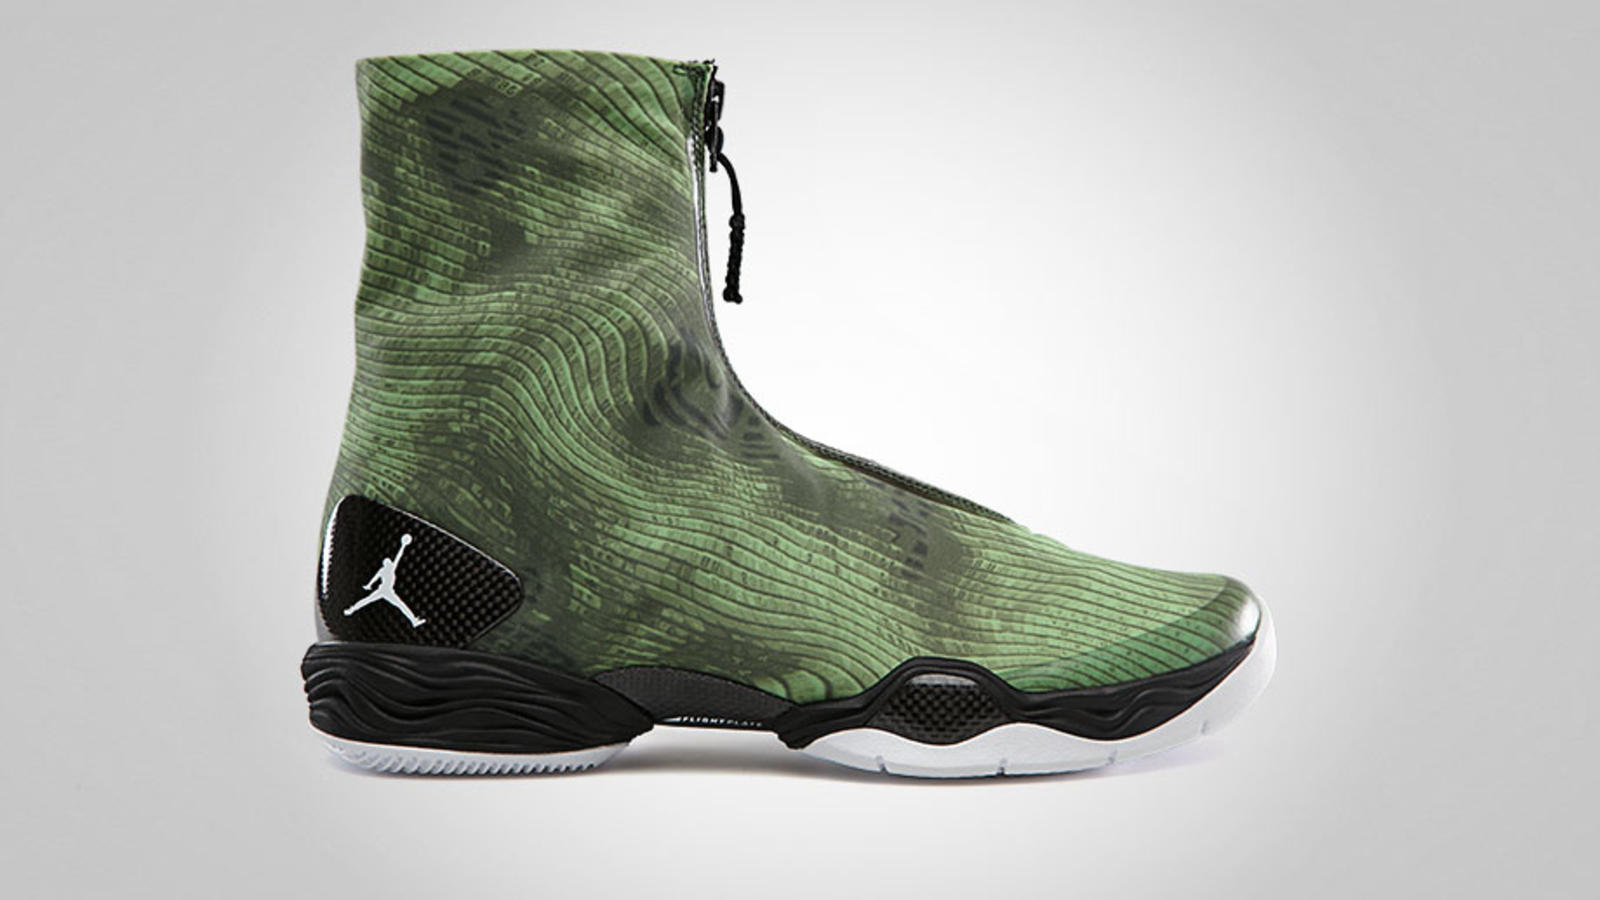 timeless design 266c7 a1c44 Today, Jordan Brand, a division of NIKE, Inc., unveiled the AIR JORDAN XX8,  the 28th shoe in the AIR JORDAN franchise. It will be available in Houston  only ...